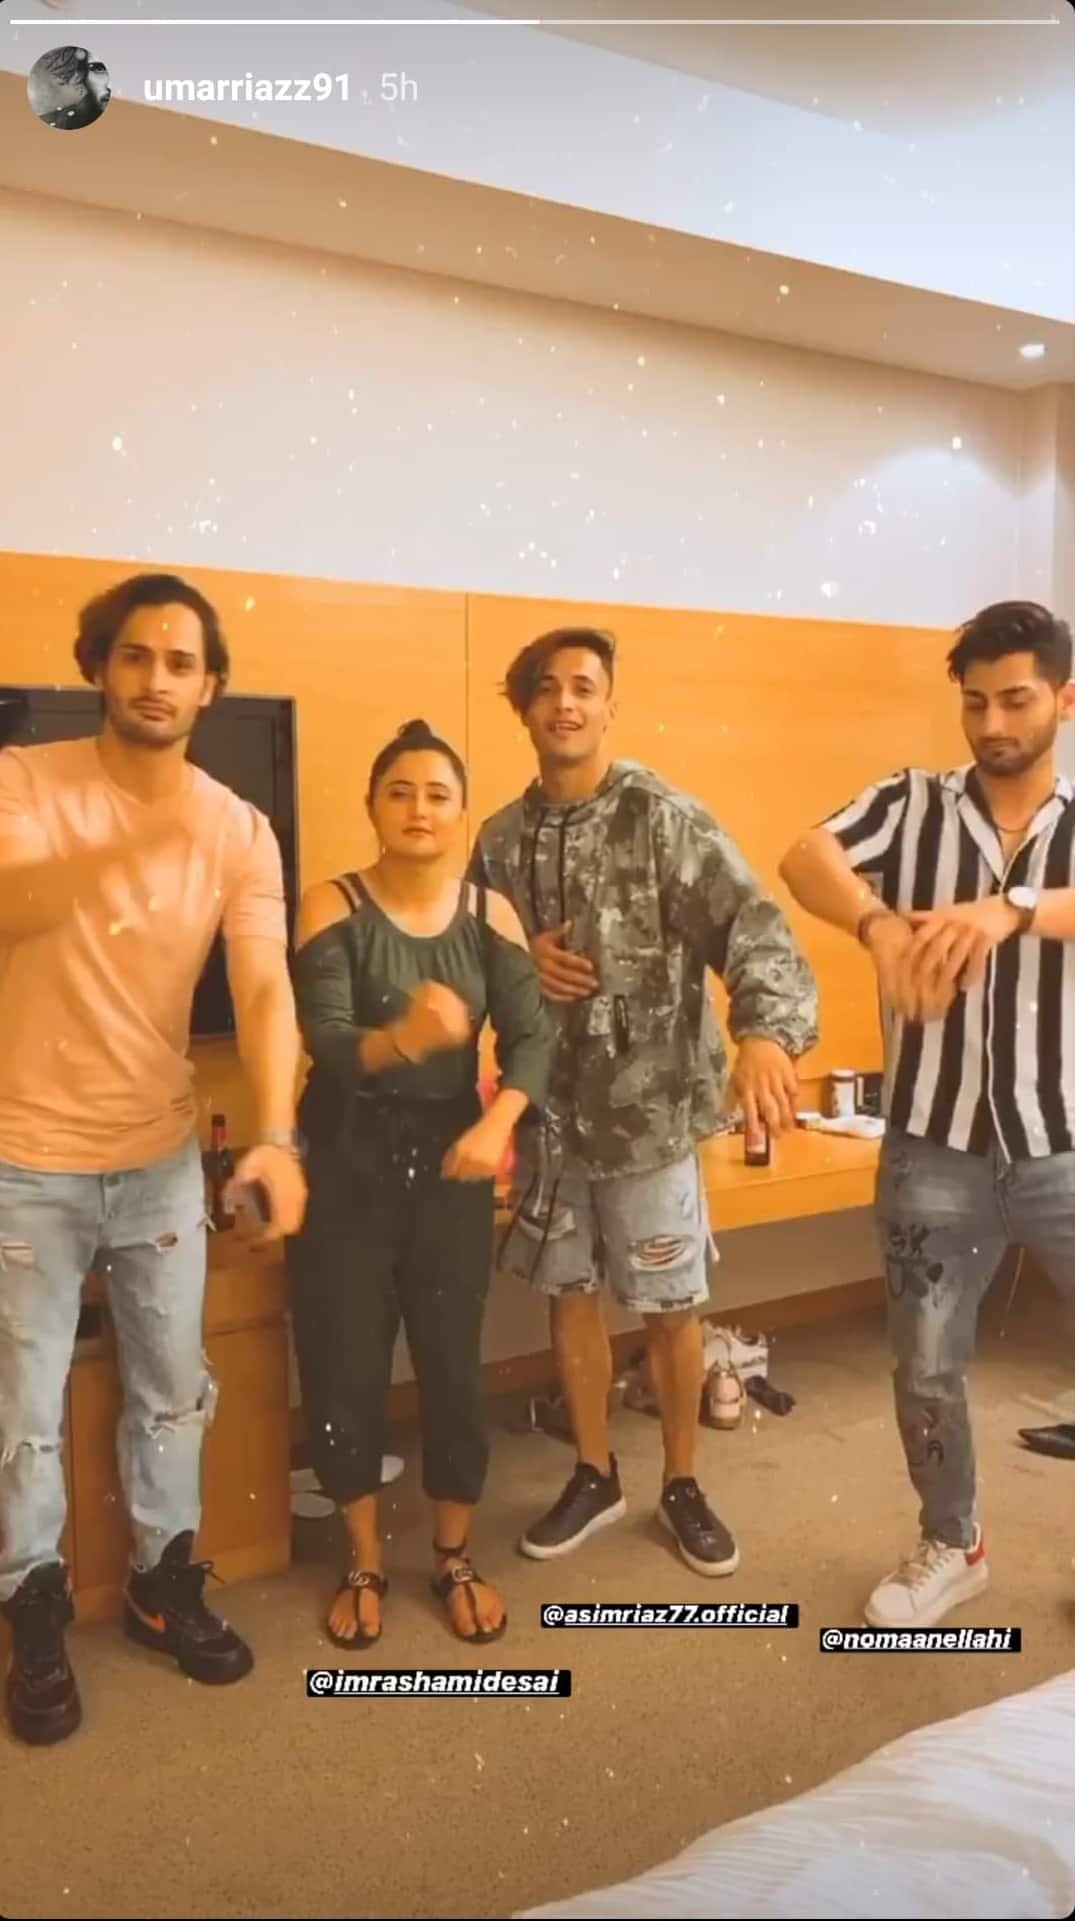 Bigg Boss 13: Rashami Parties With Asim, Himanshi; Takes A Dig At Sidharth With A Hilarious Video